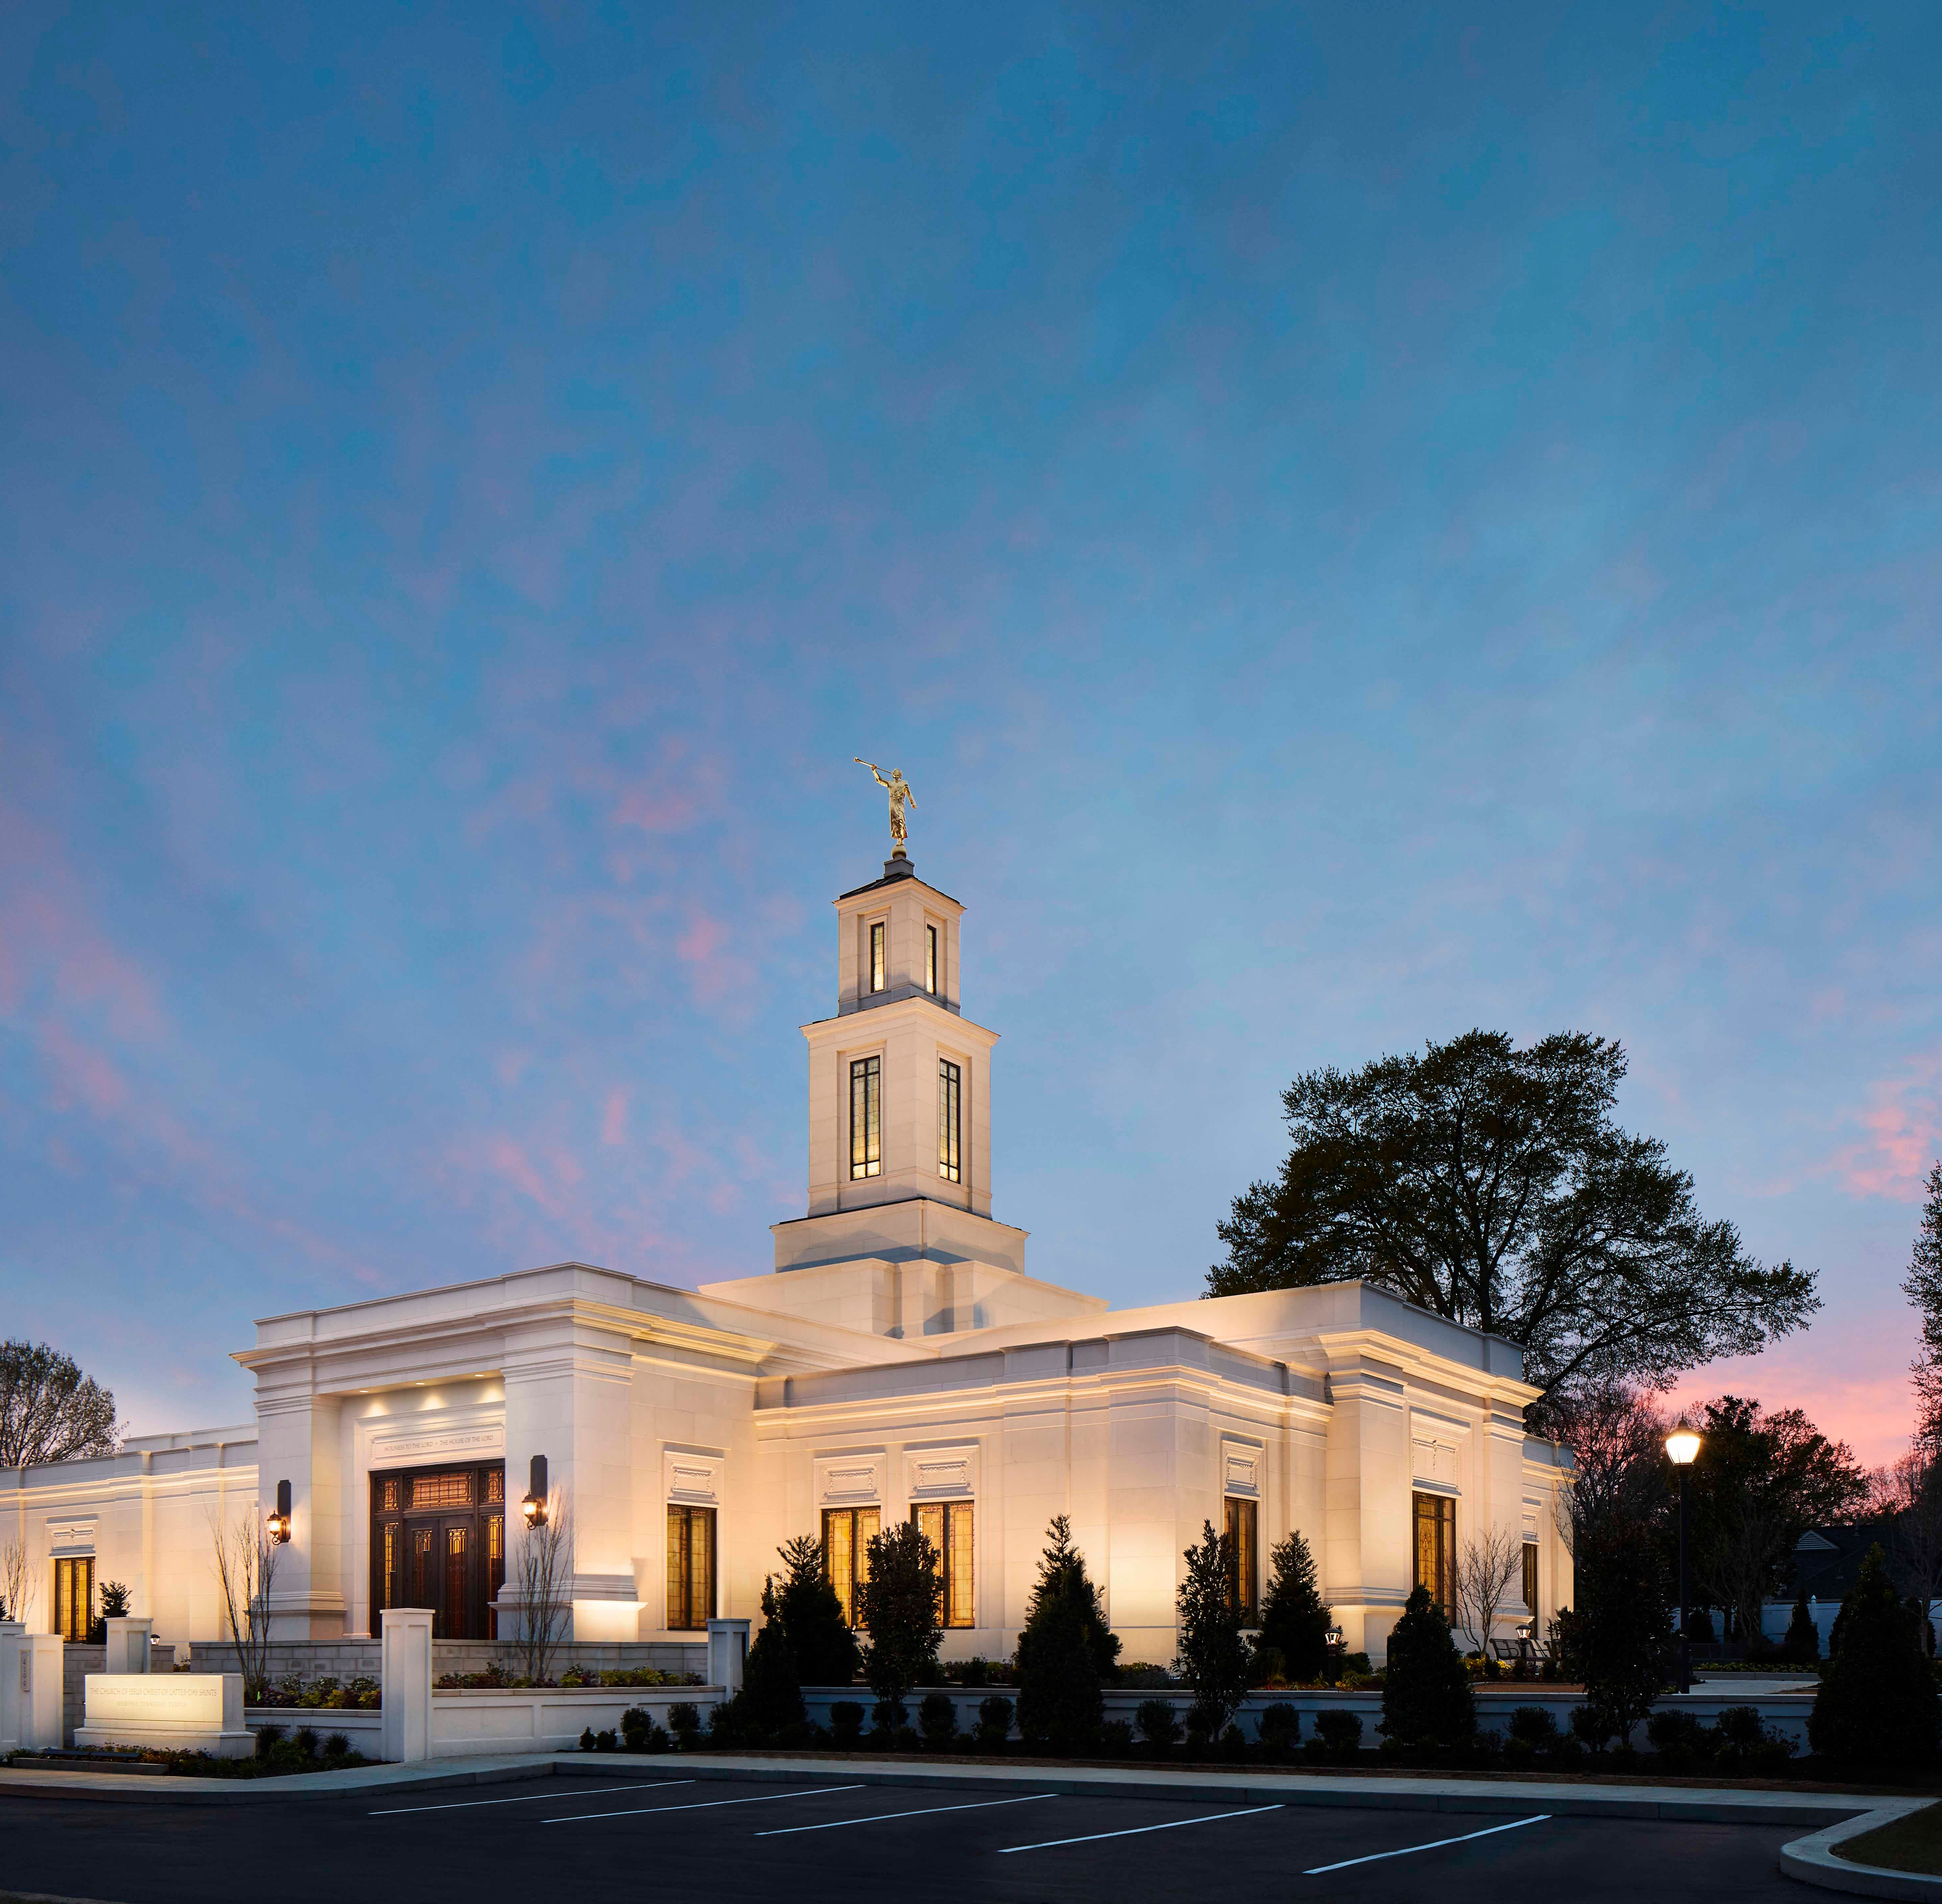 A first look at the Memphis Tennessee Temple of the Church of Jesus Christ of Latter-day Saints